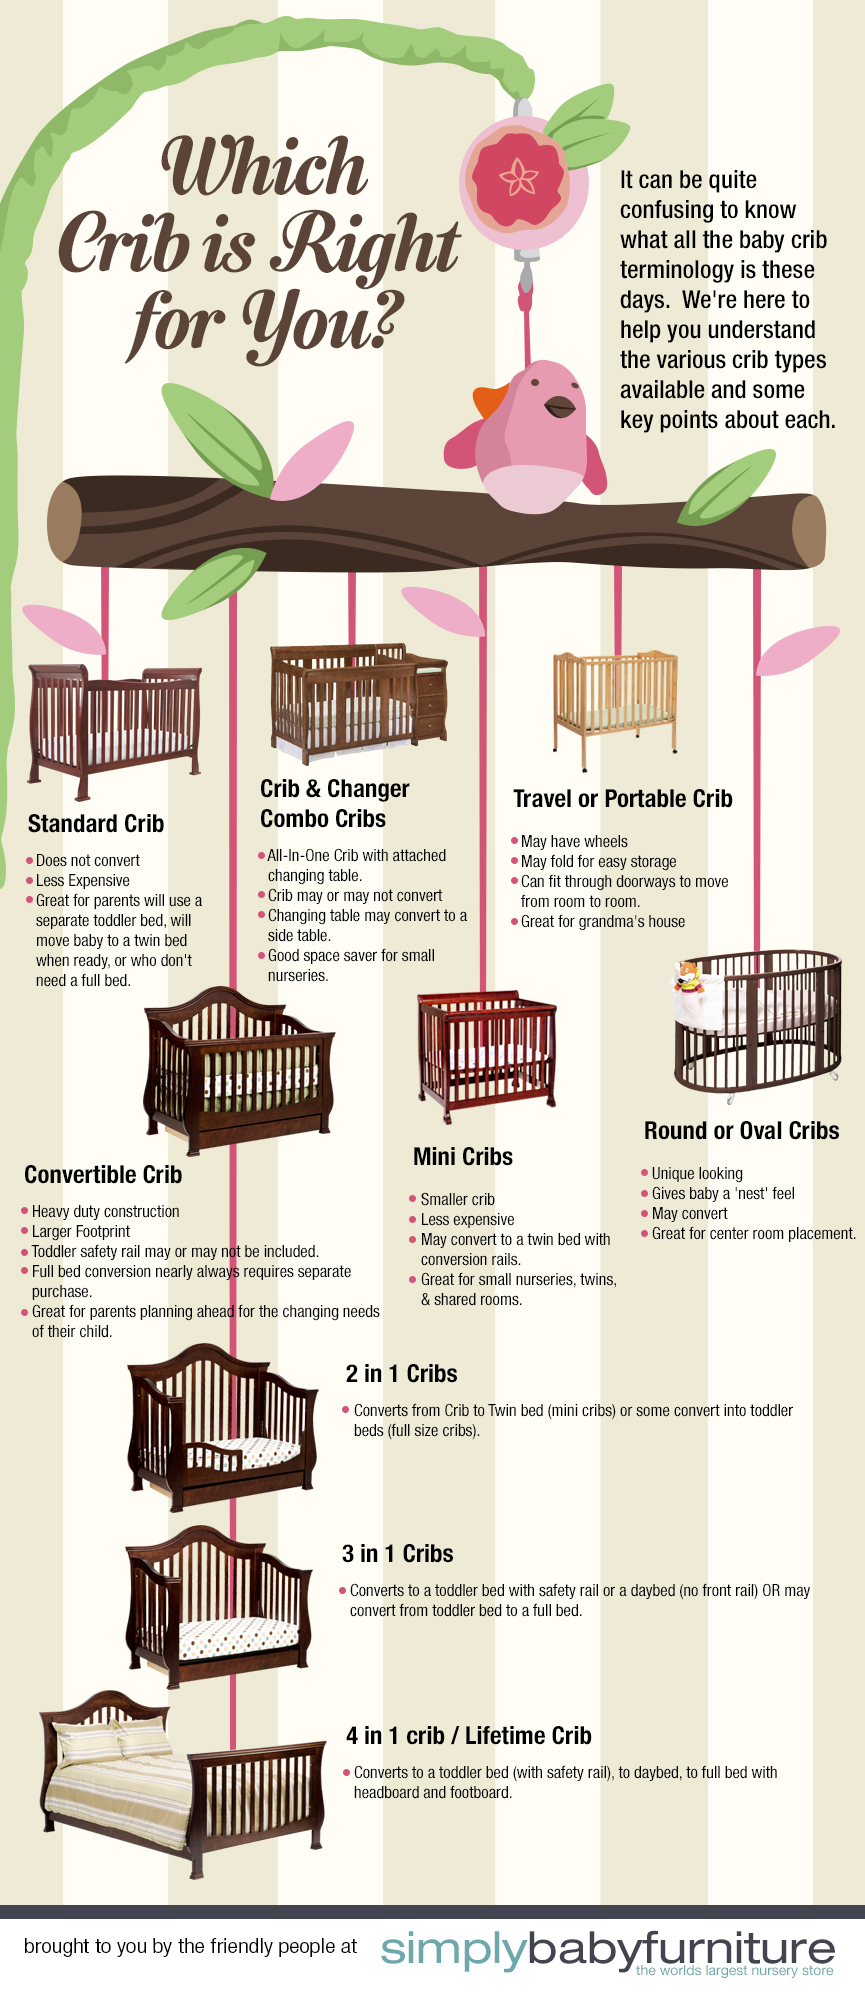 Which Crib is RIght for You?